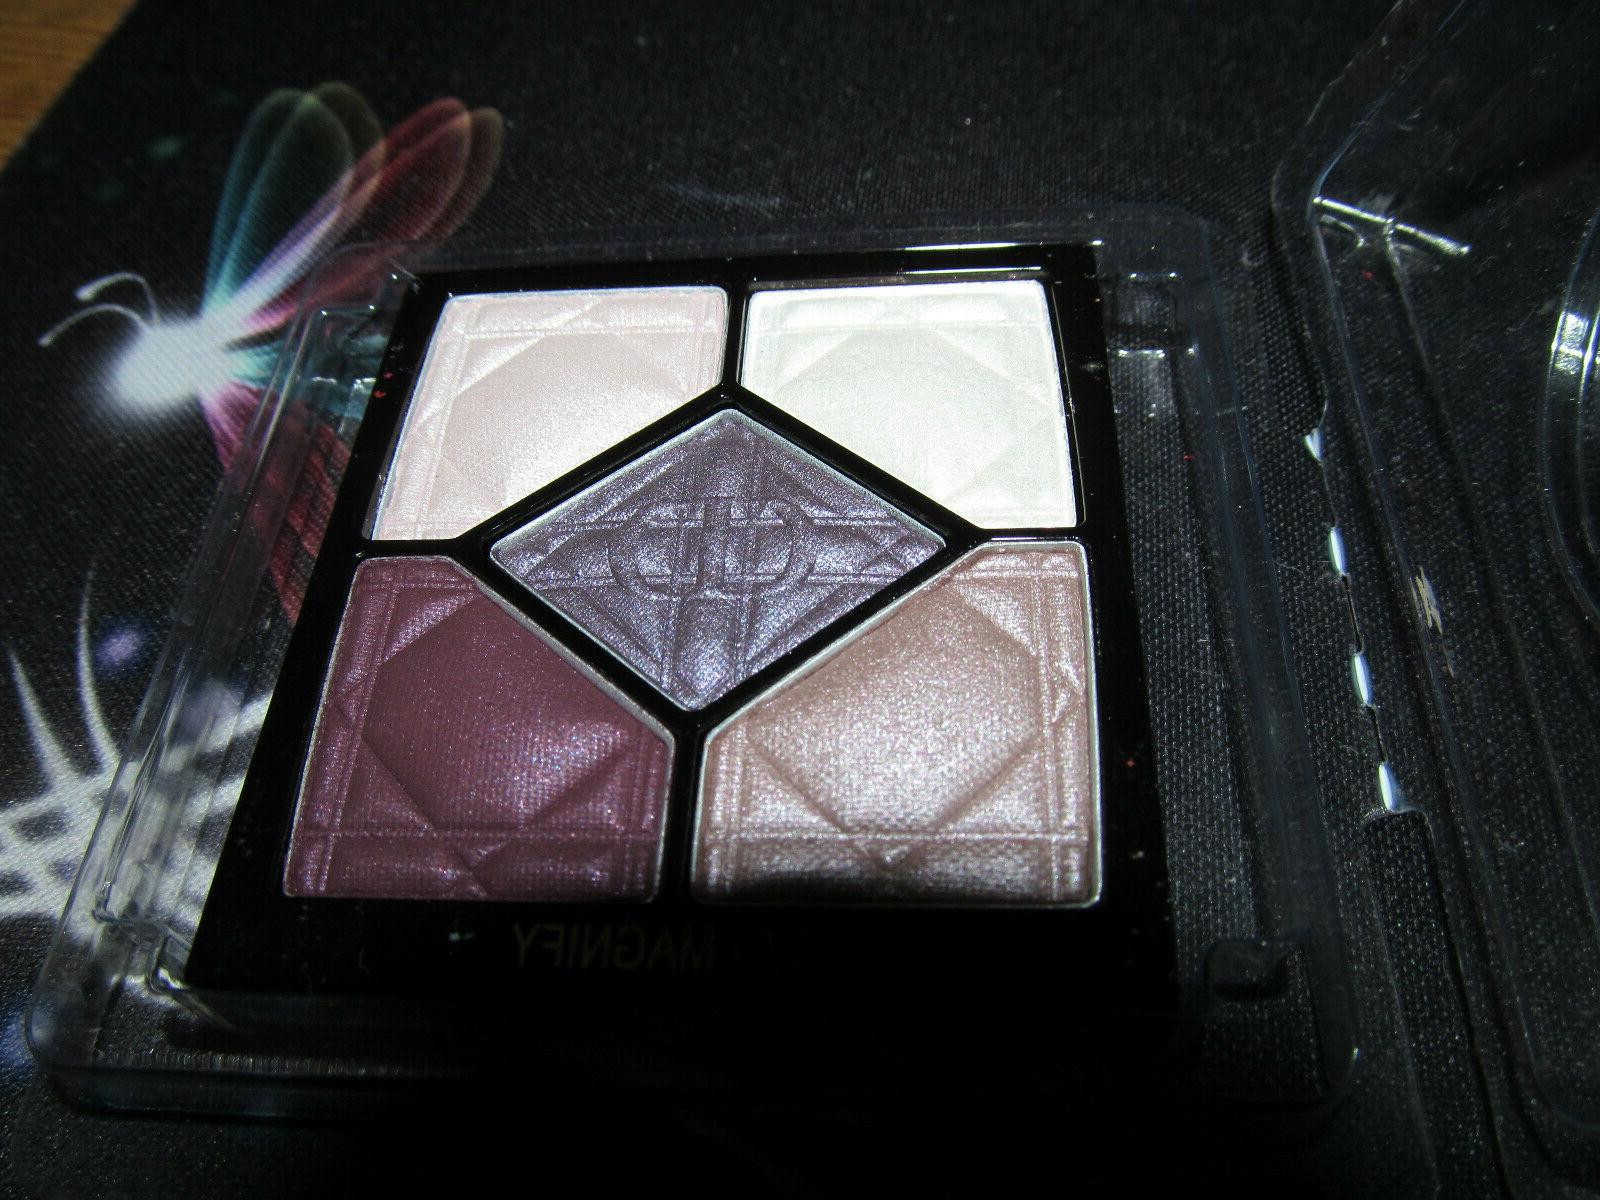 Christian 5 eyeshadow in magnify size